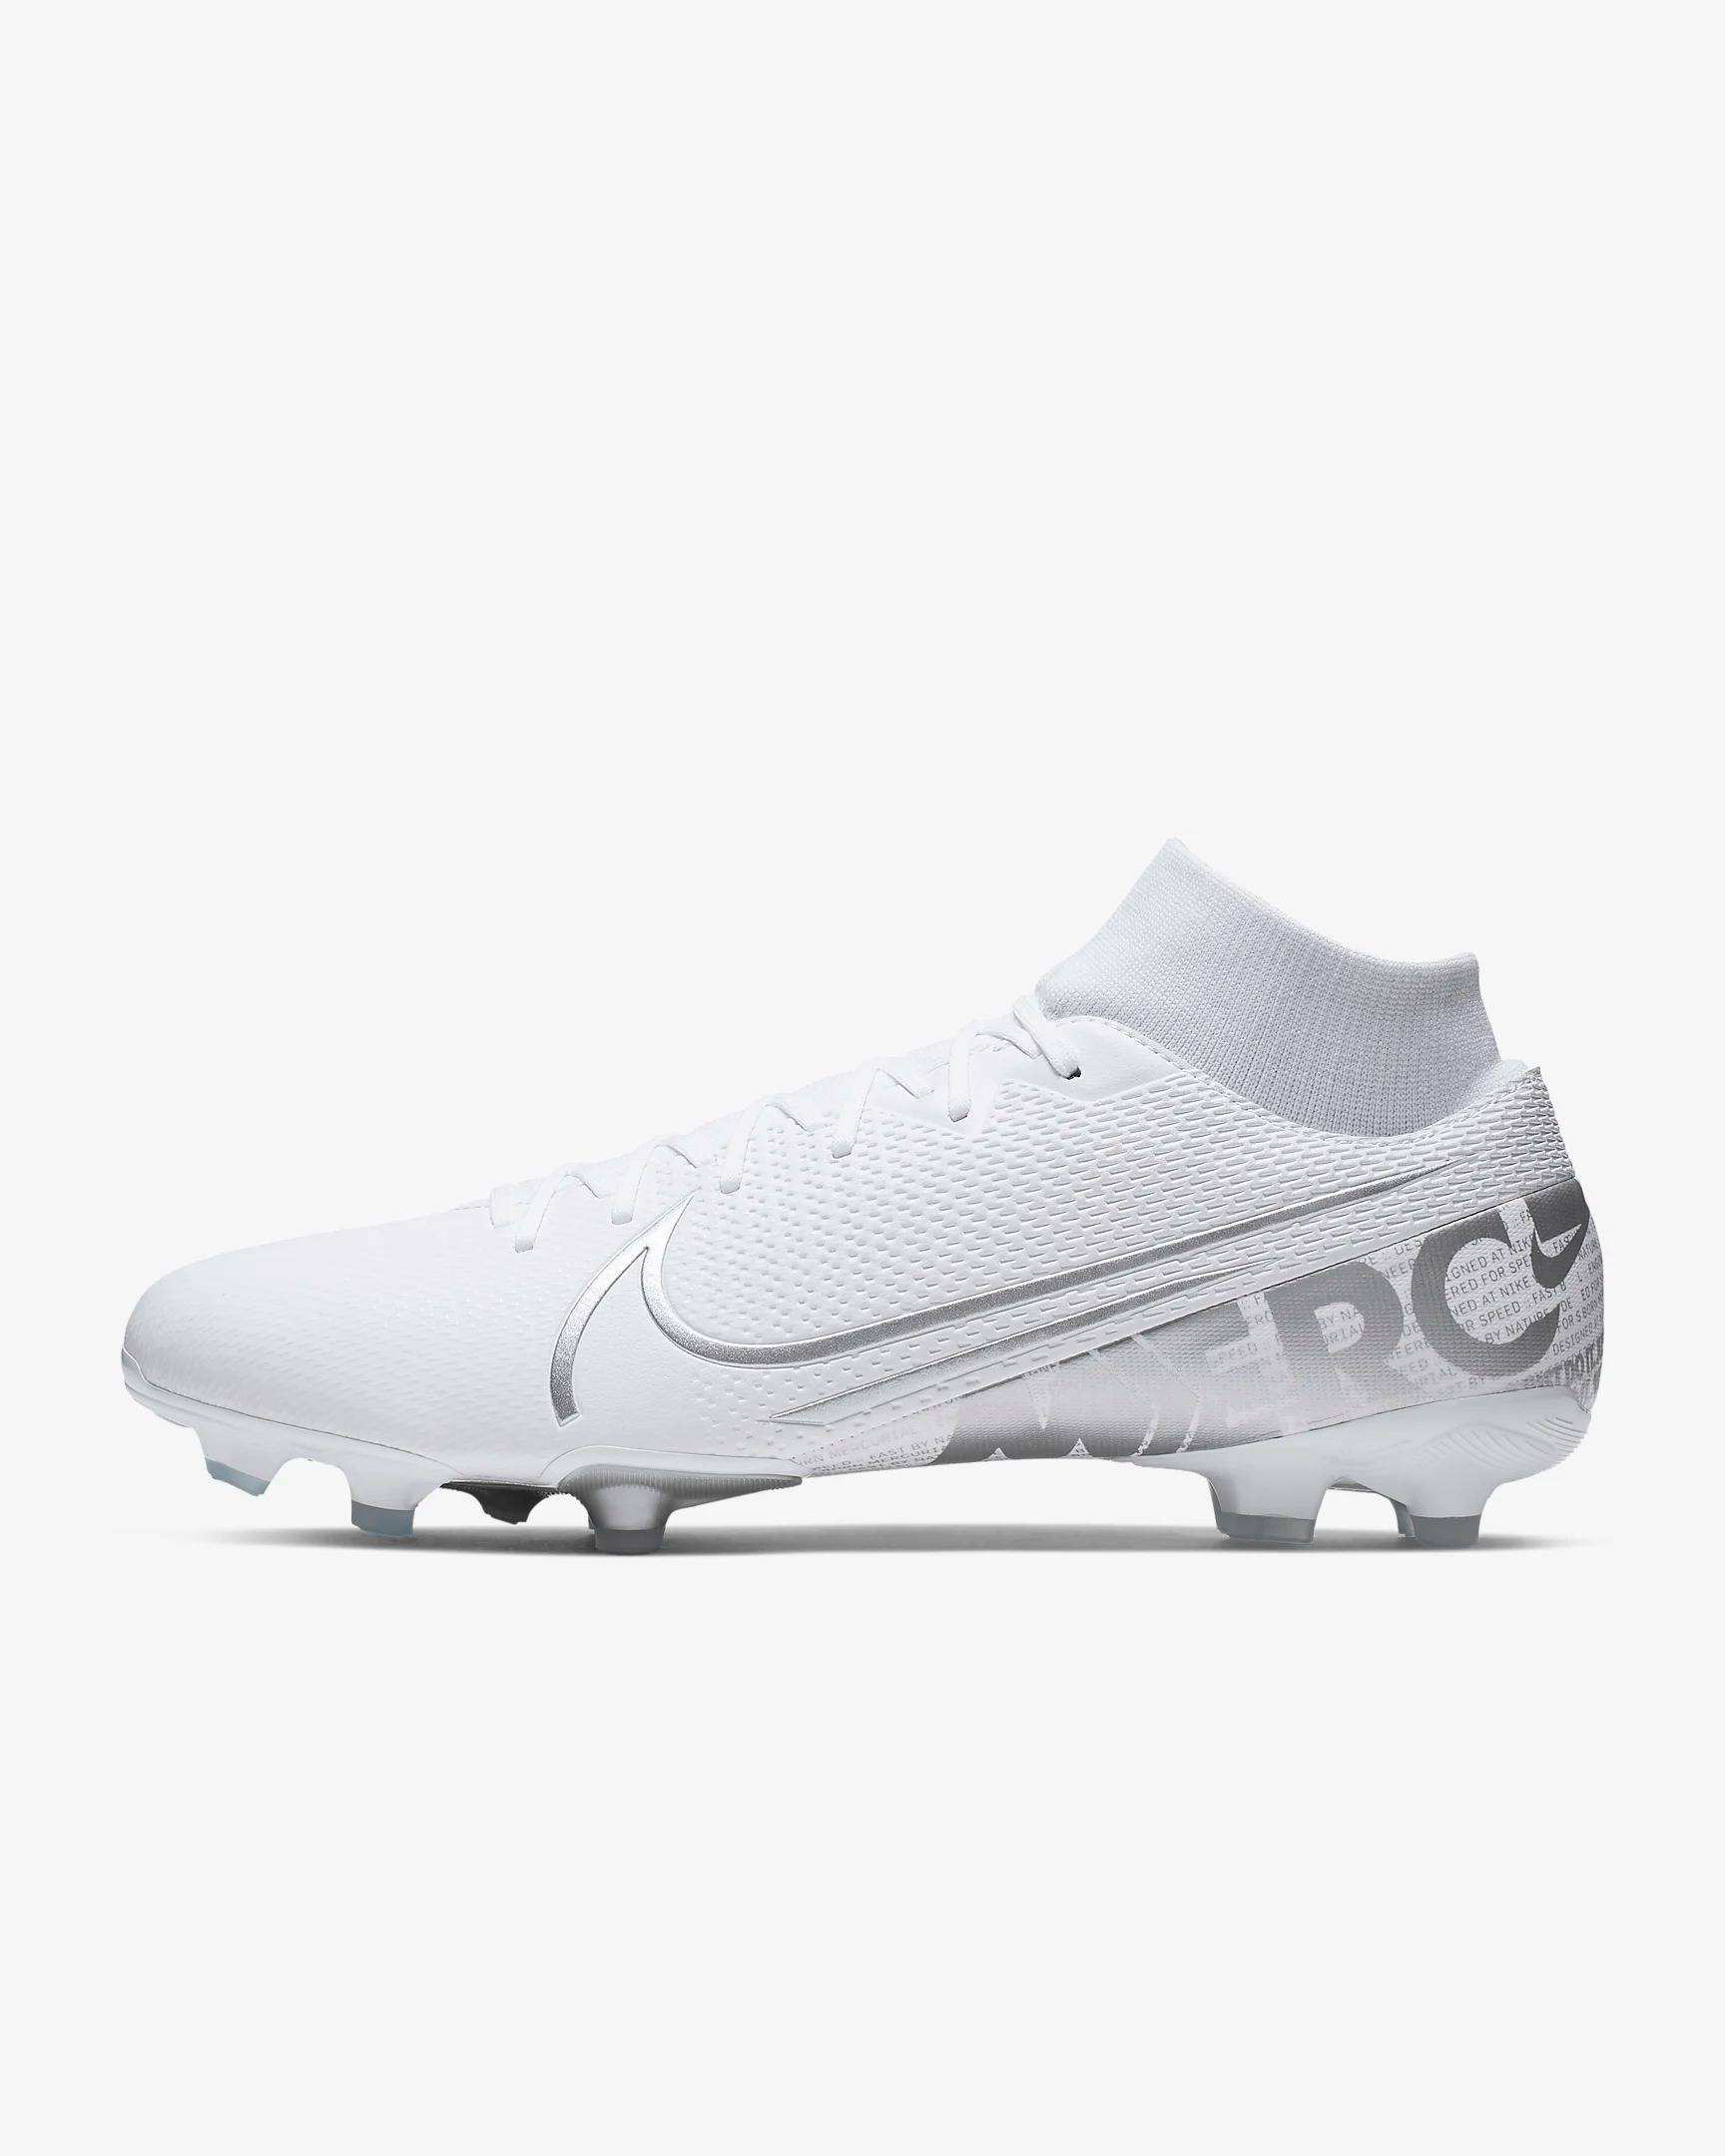 Футбольные бутсы Nike Superfly VII Academy FG/MG AT7946-100 SR